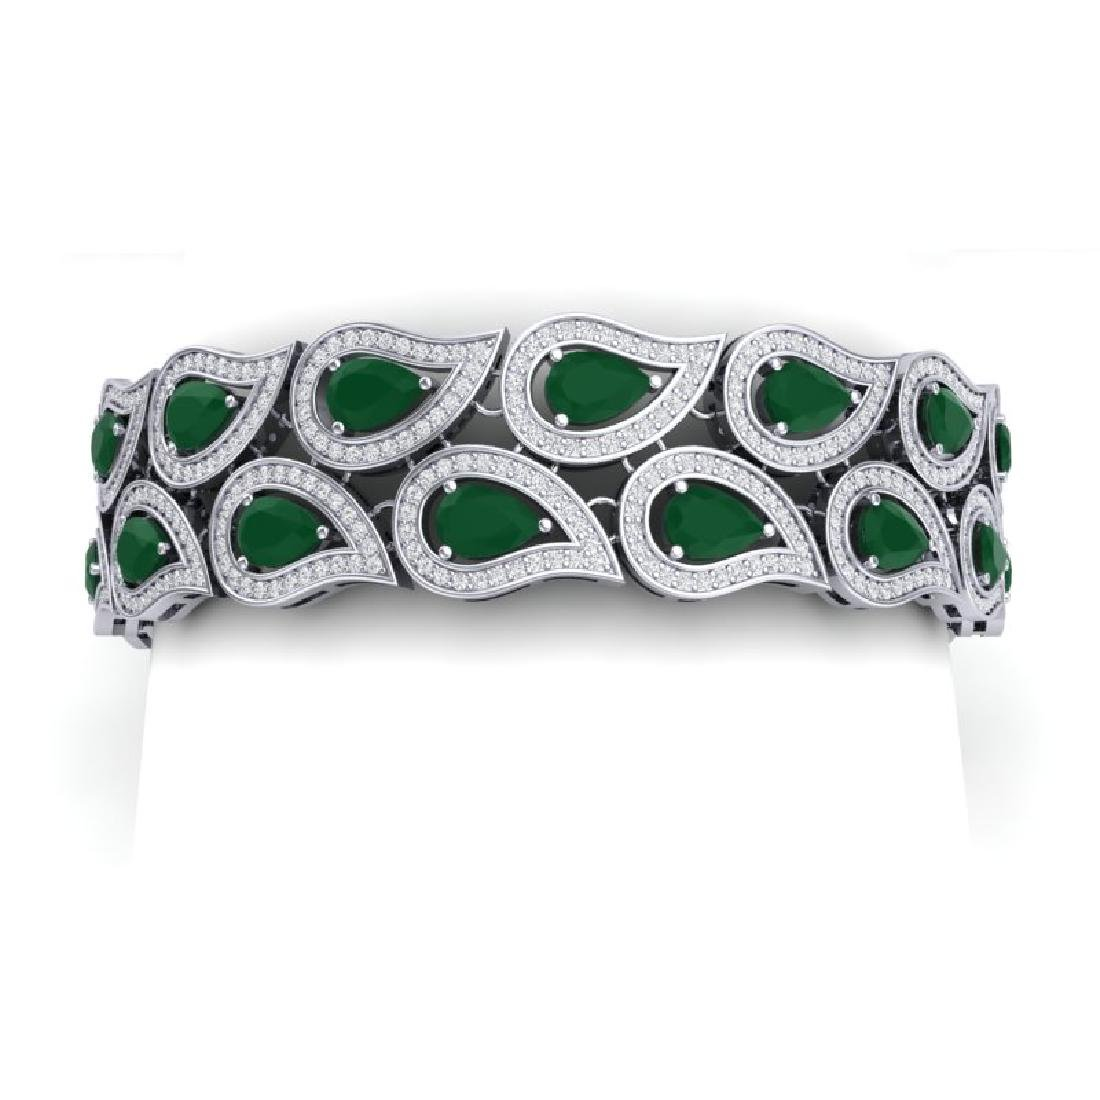 20.1 CTW Royalty Emerald & VS Diamond Bracelet 18K